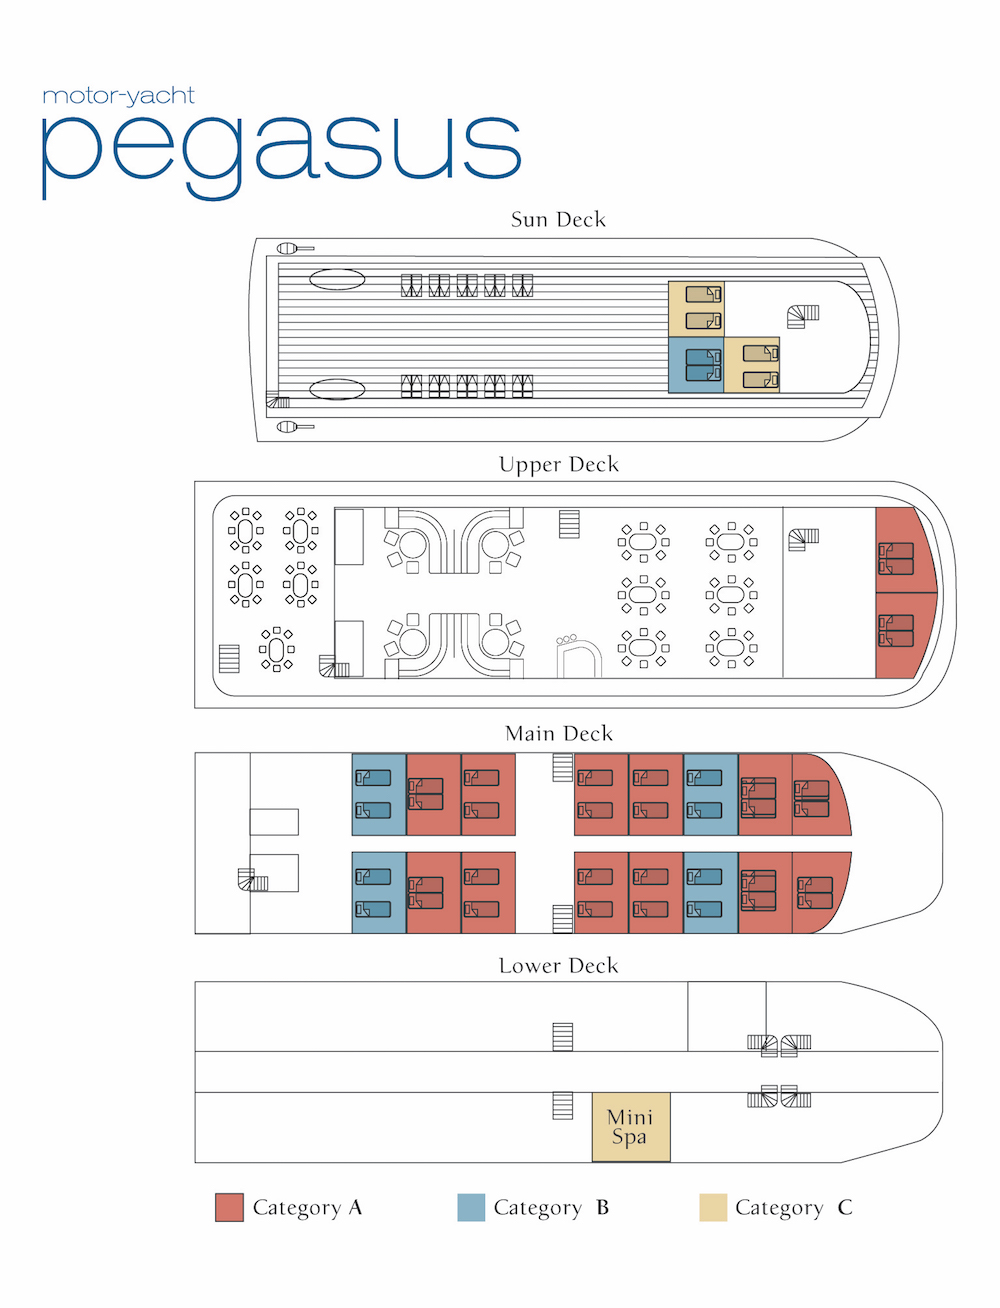 Pegasus Deck Plan floorplan